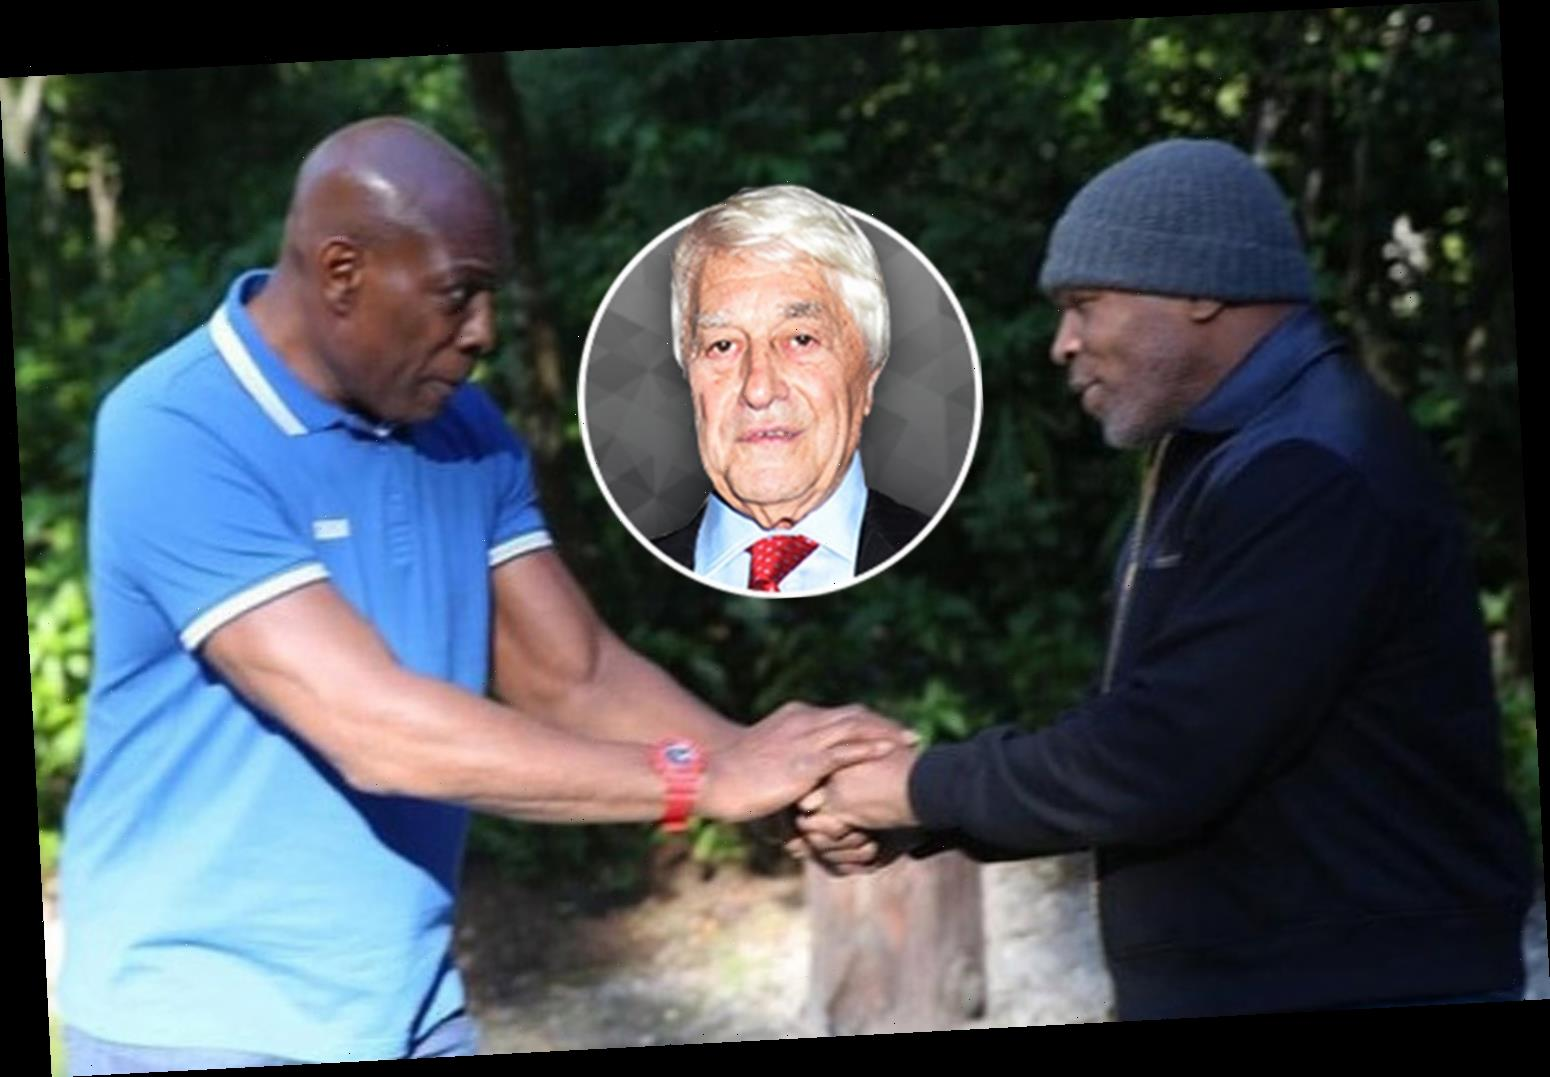 Mike Tyson and Frank Bruno seem to have found peace at last and there's genuine warmth between pair